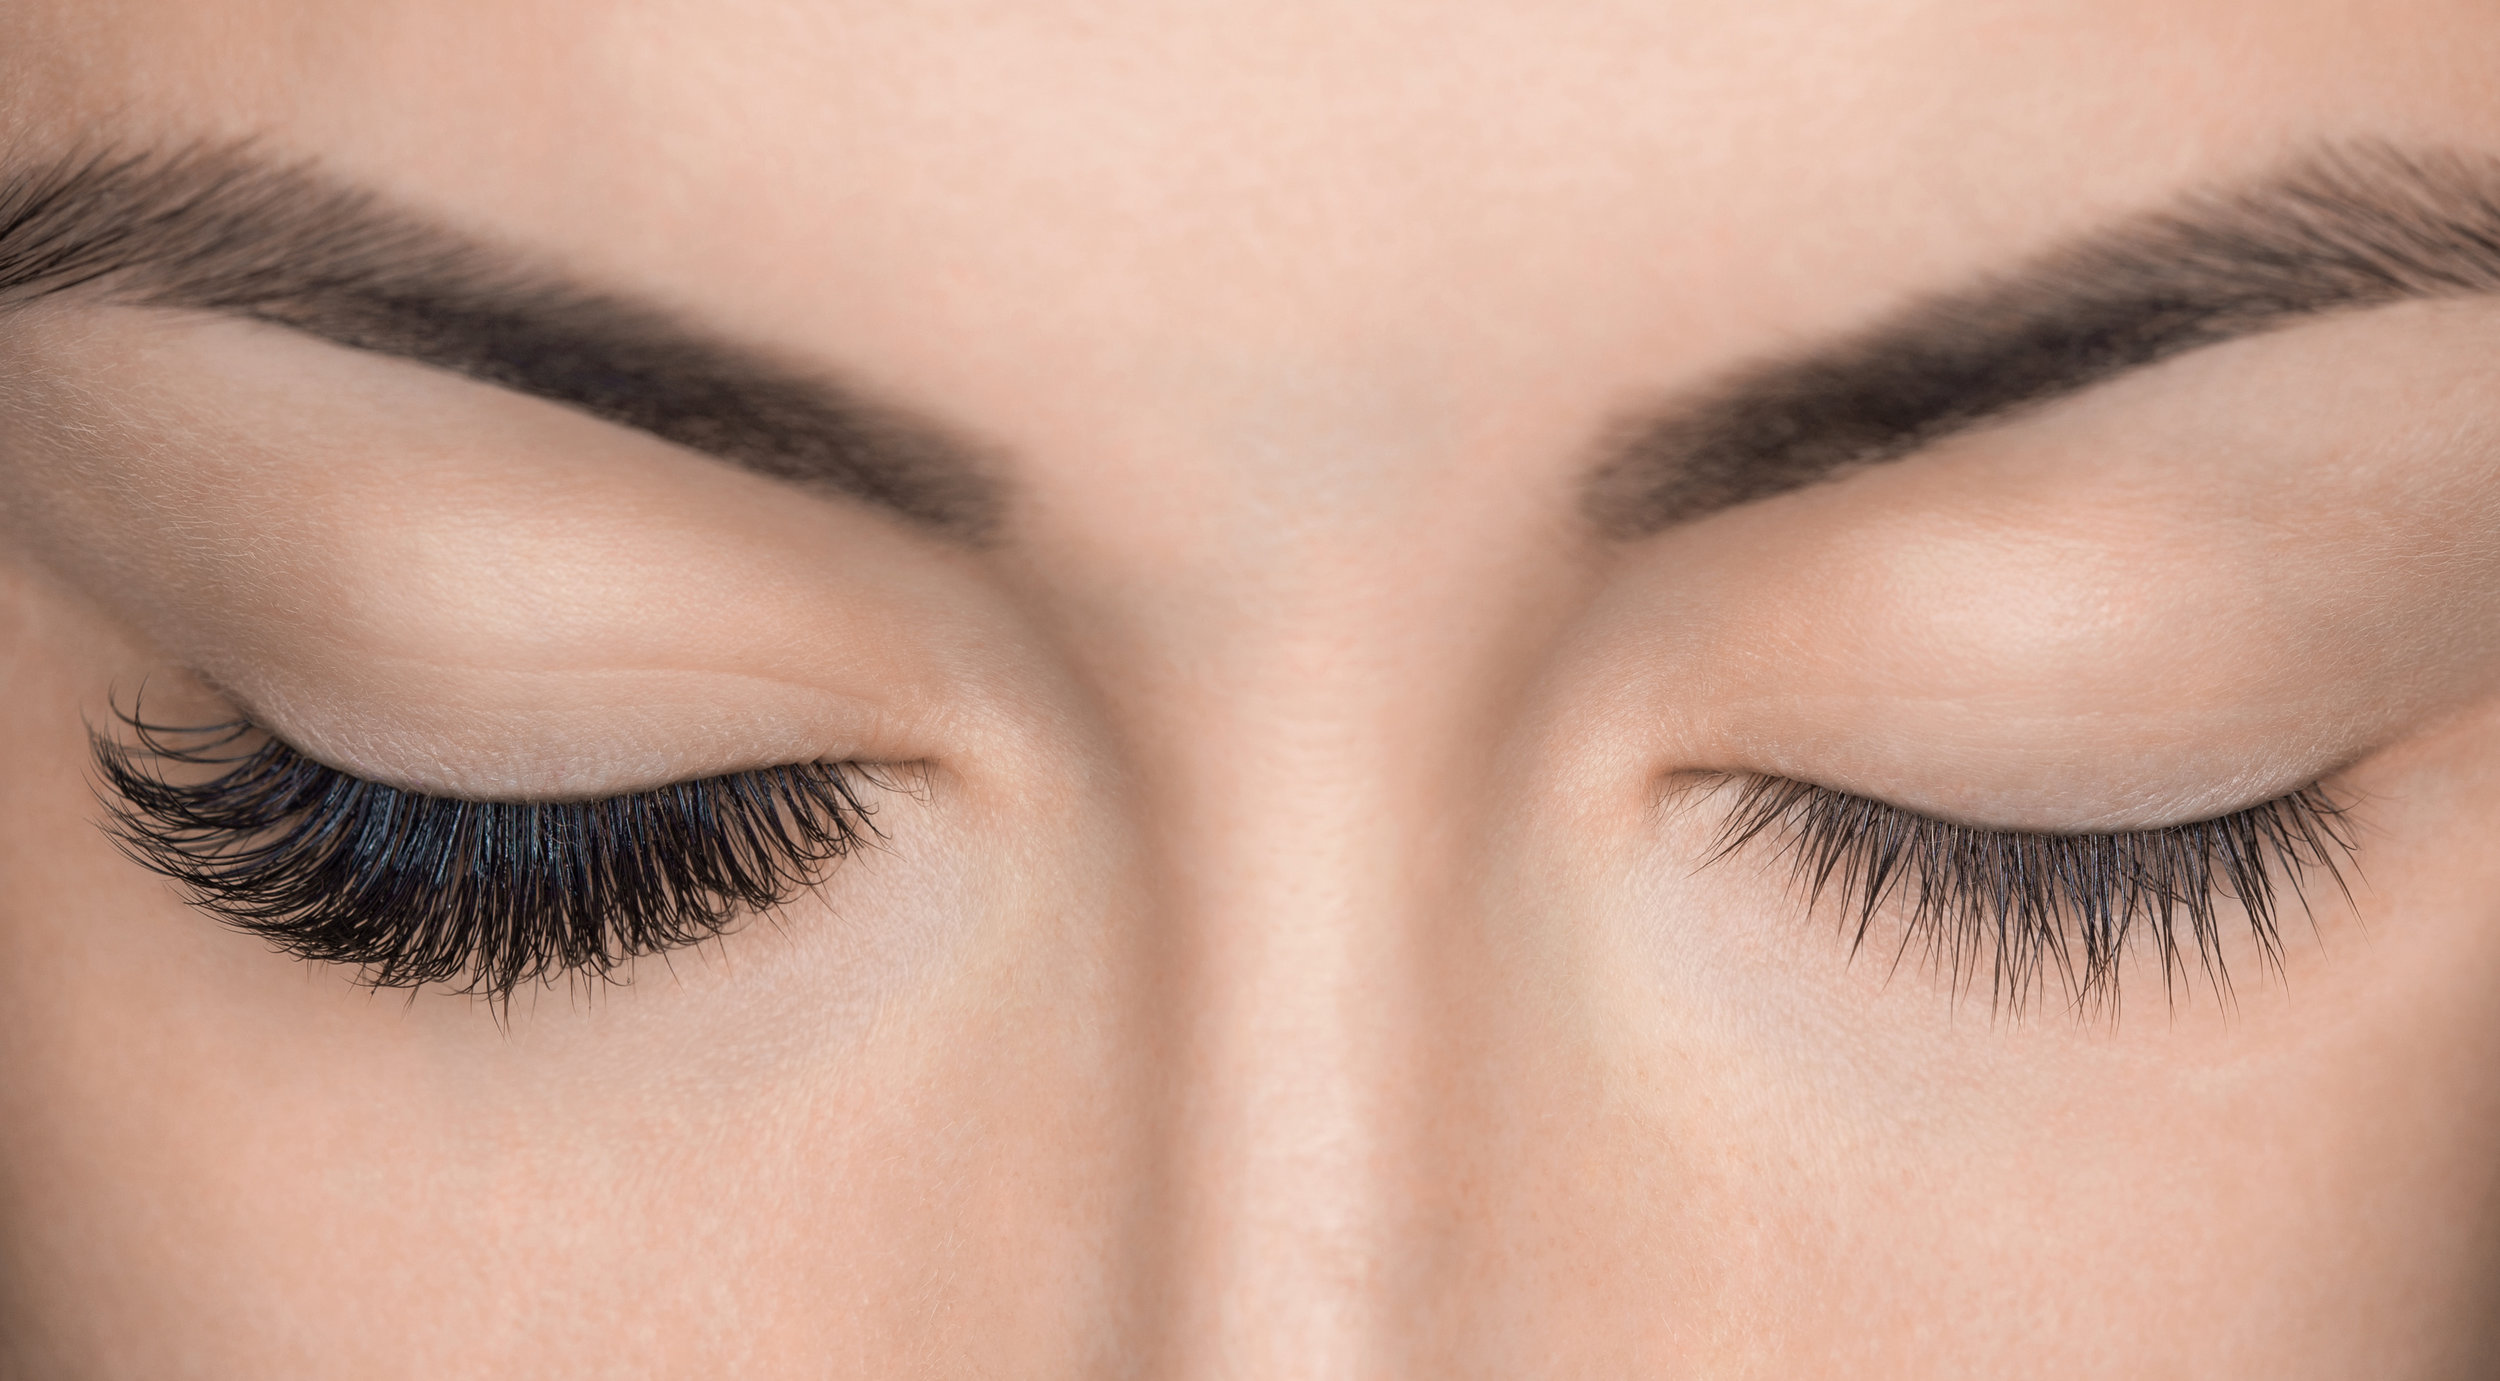 Lash + Brow Specialties - CLICK HERE FOR A LIST OF LASH + BROW SERVICES